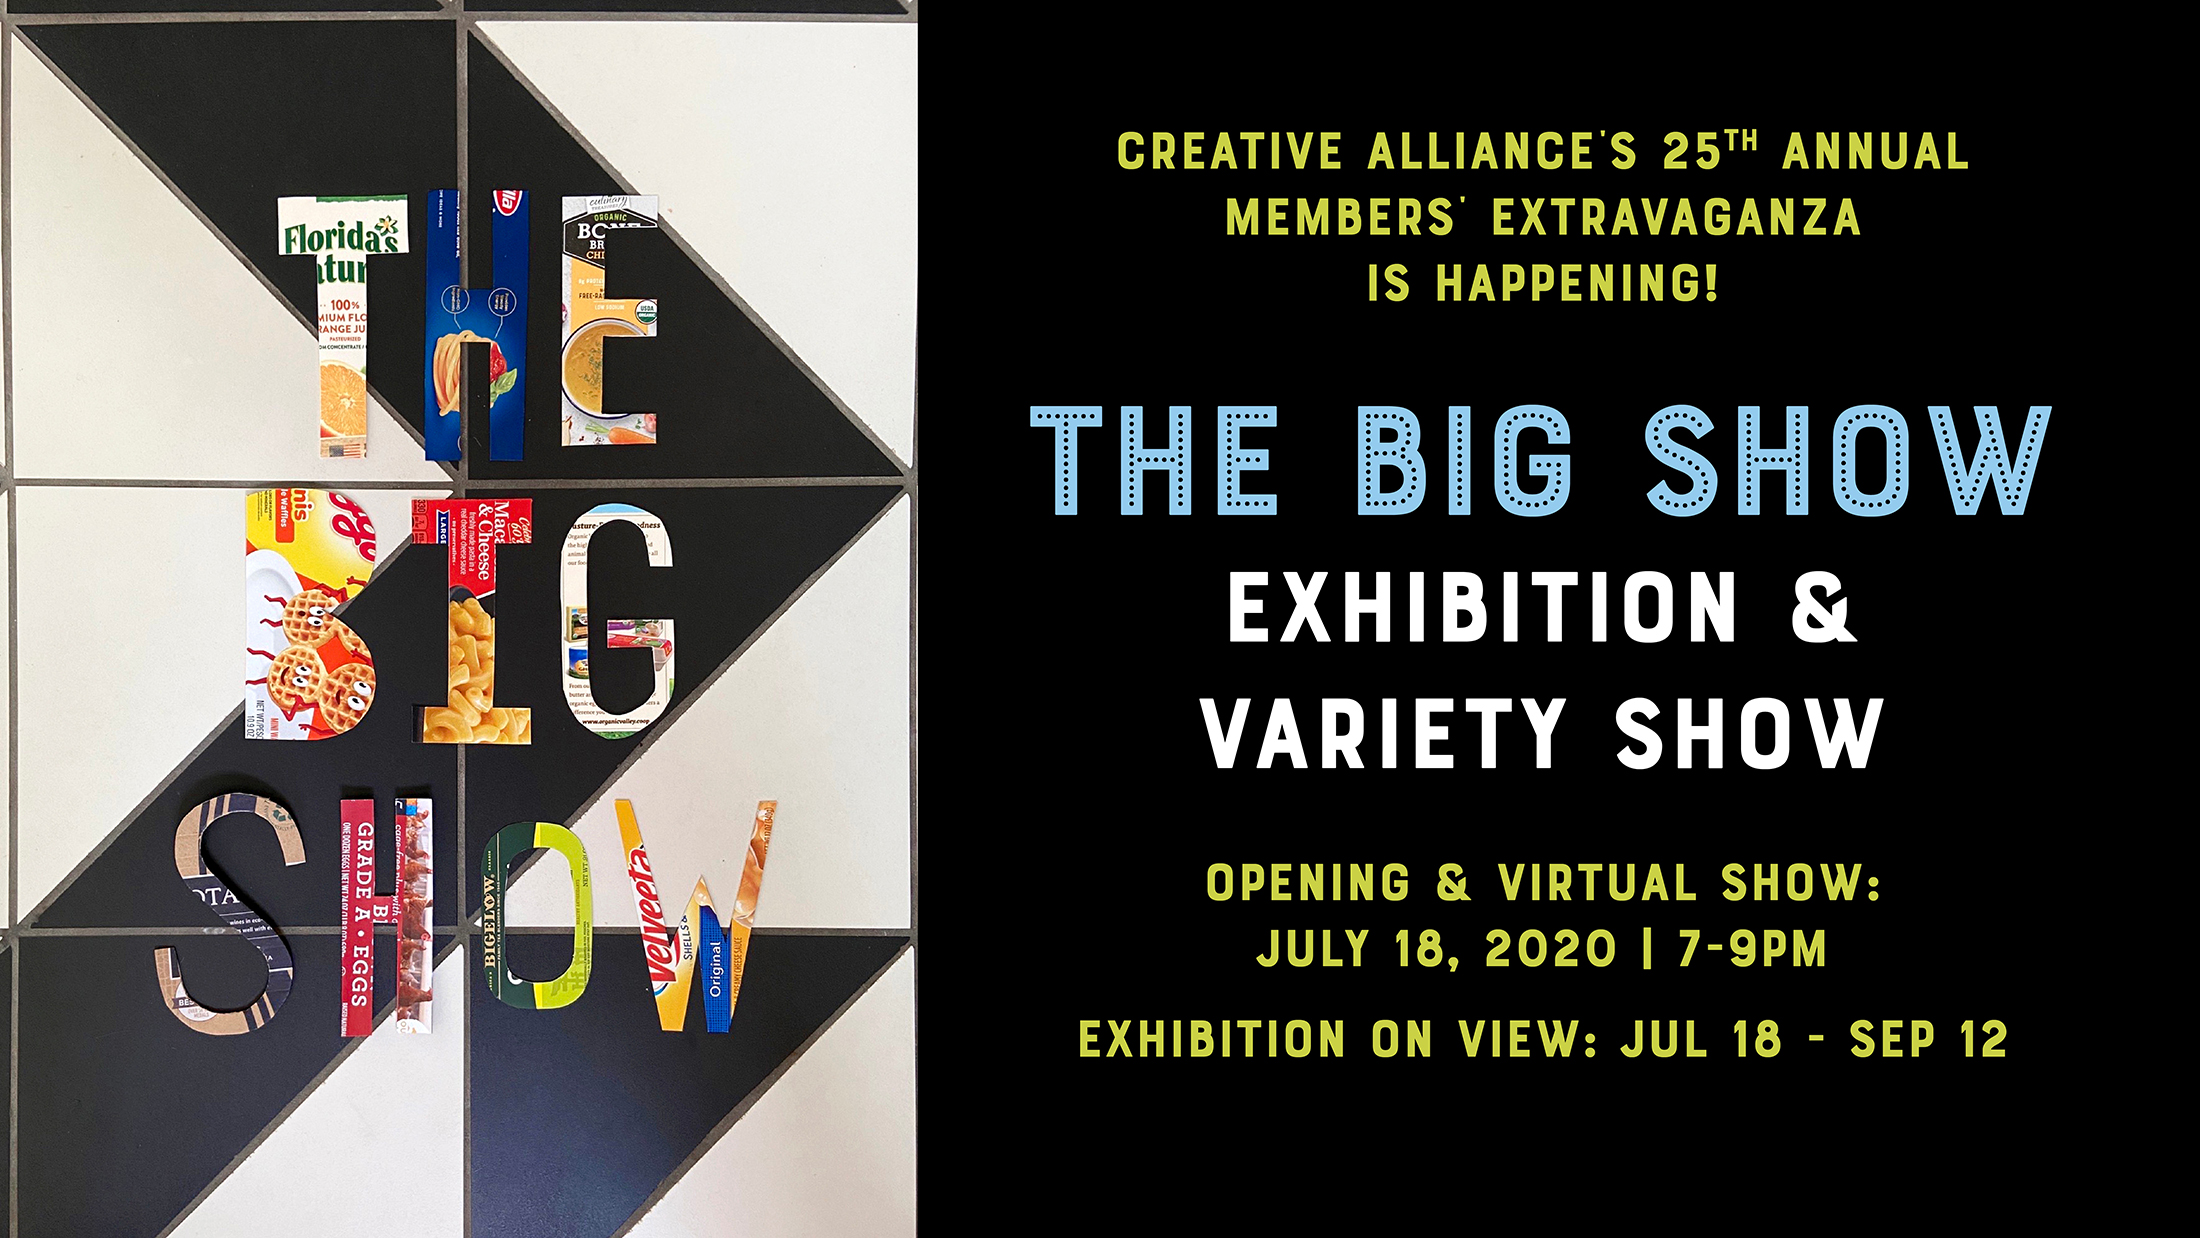 the big show creative alliance members exhibition and variety show